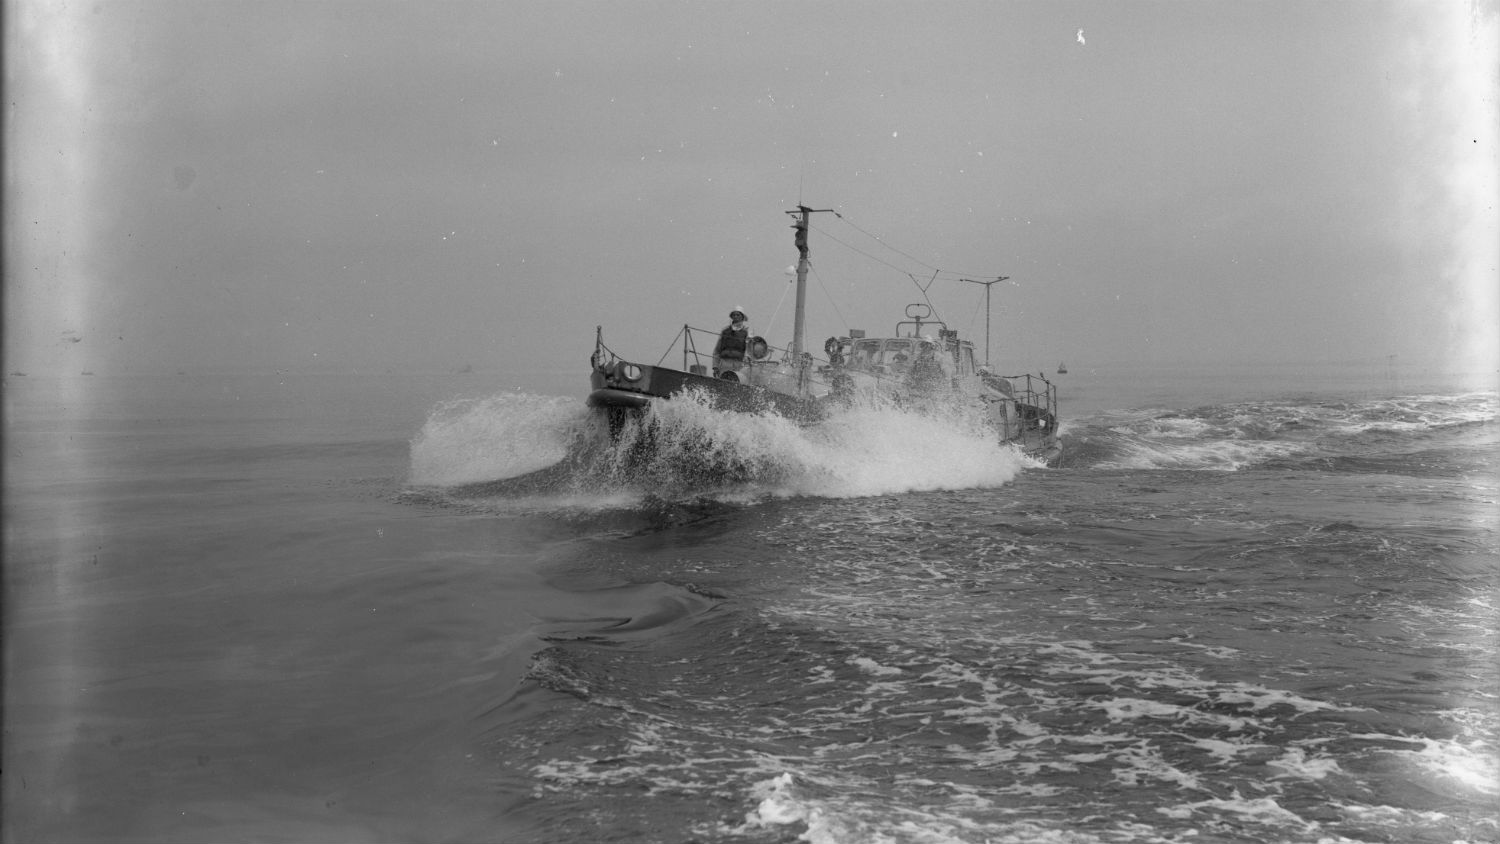 Black and white image of Lowestoft lifeboat, Frederick Edward Crick, while on trials